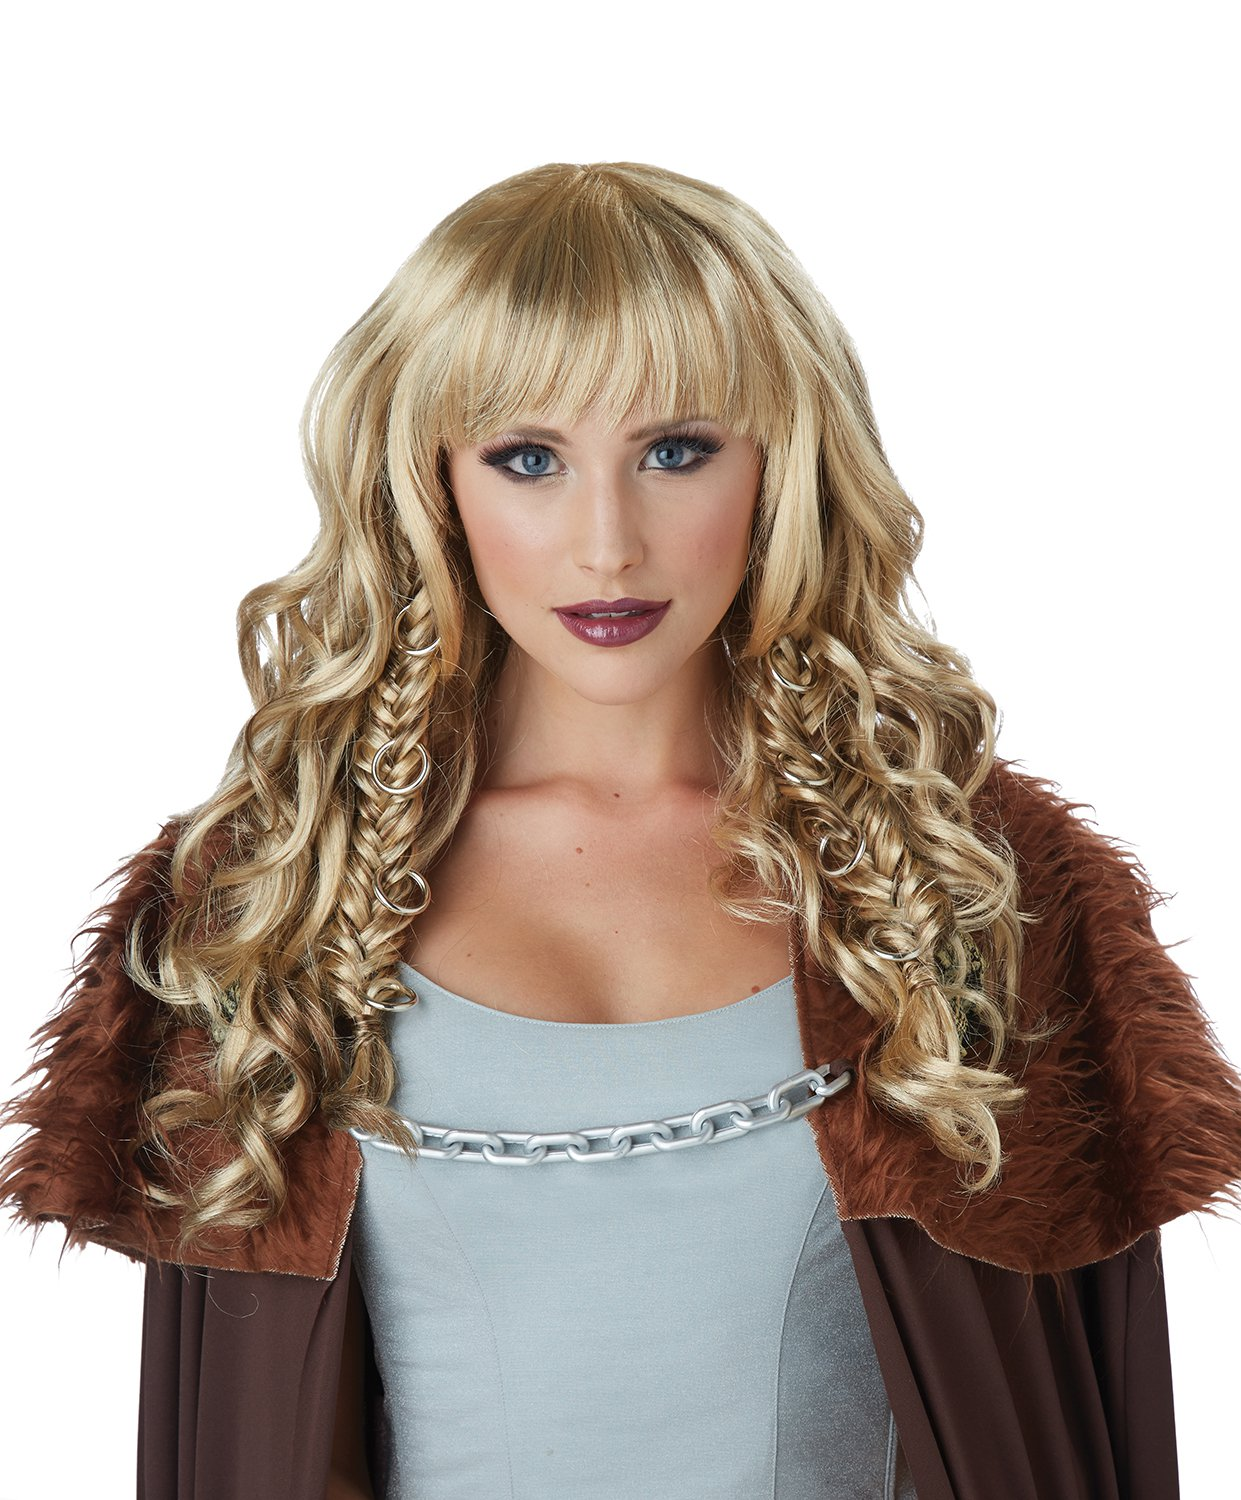 #70881  Renaissance Medieval Times Viking Warrior Queen Costume Accessory Wig